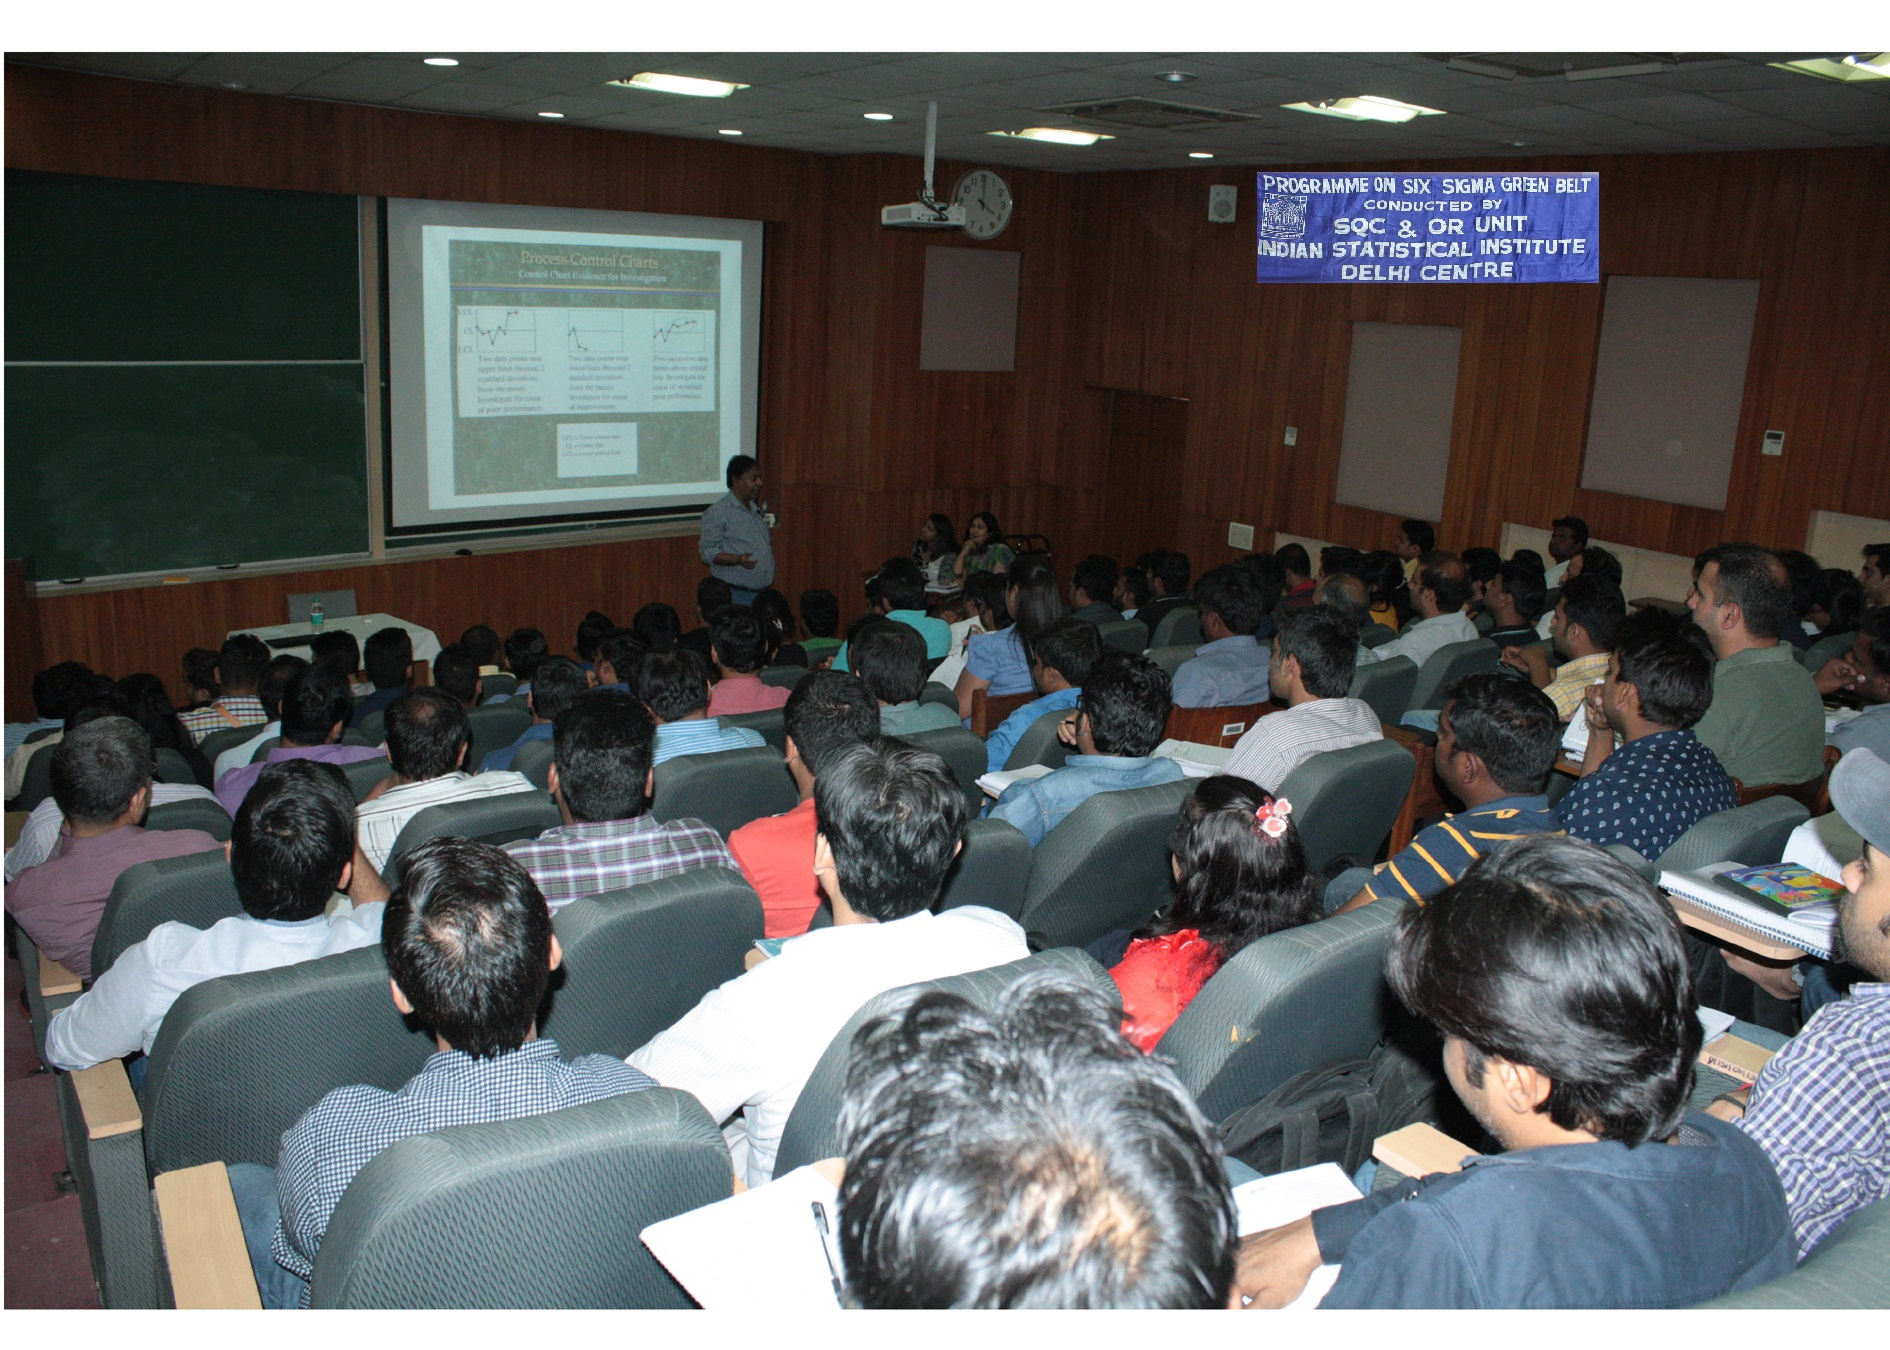 Six sigma green belt indian statistical institute delhi centre photograph1 and photograph2 professor s k neogy indian statistical institute delivering lecture on statistical techniques to participants of six sigma 1betcityfo Image collections